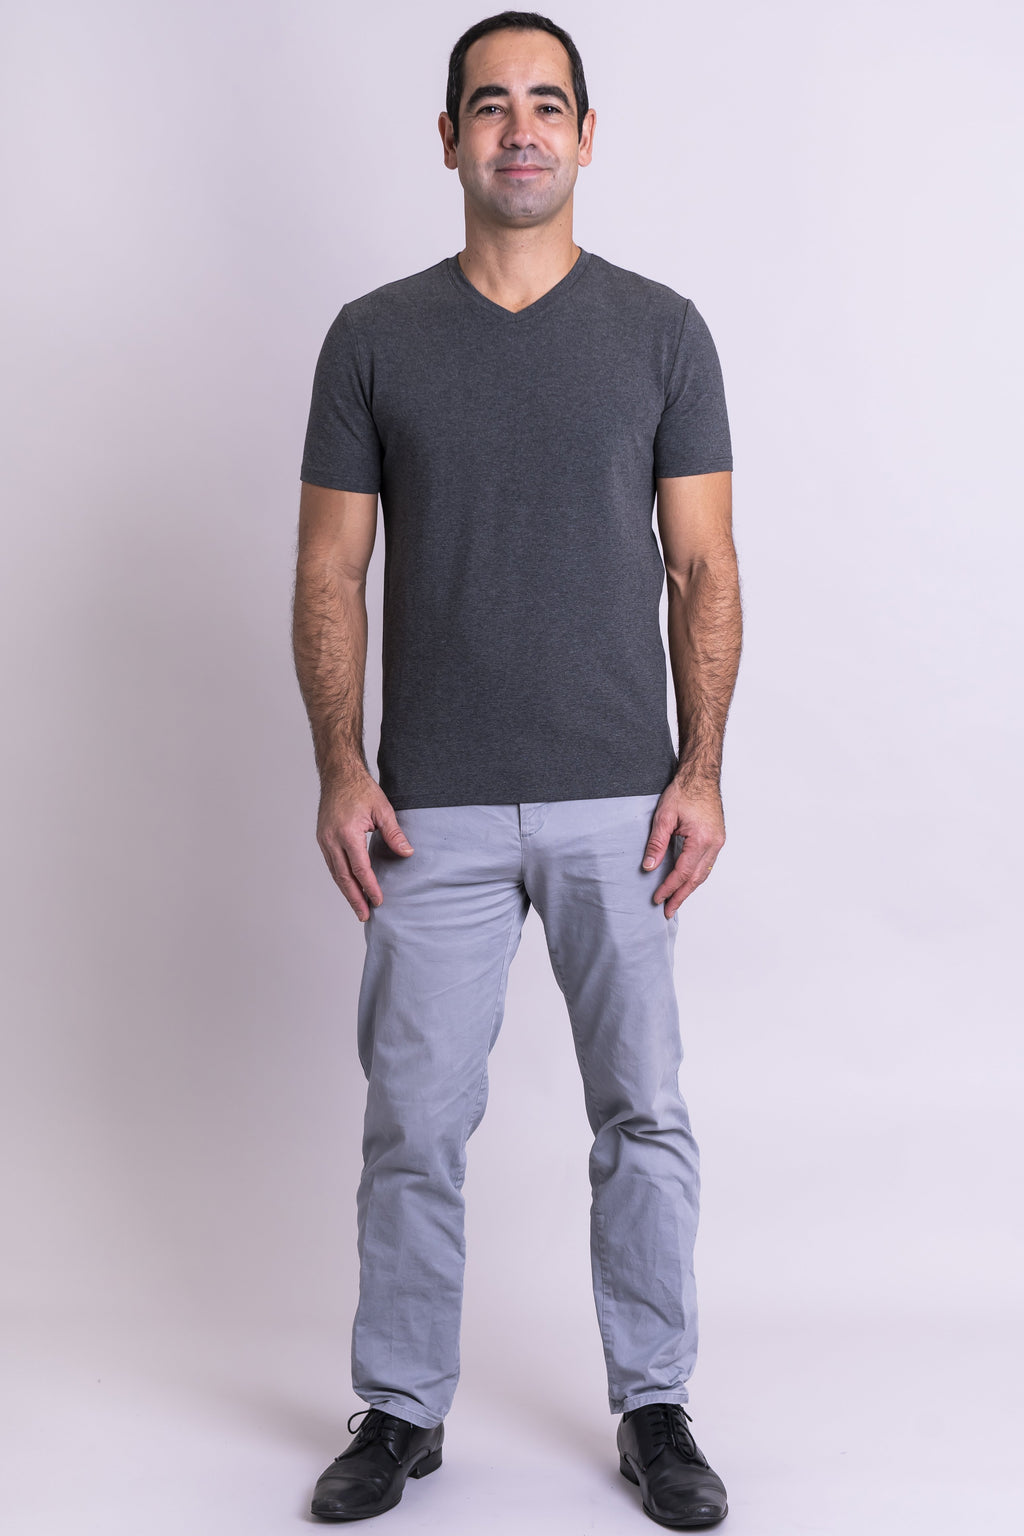 Adam Top, Yarn Dyed Grey, Bamboo - Blue Sky Clothing Co